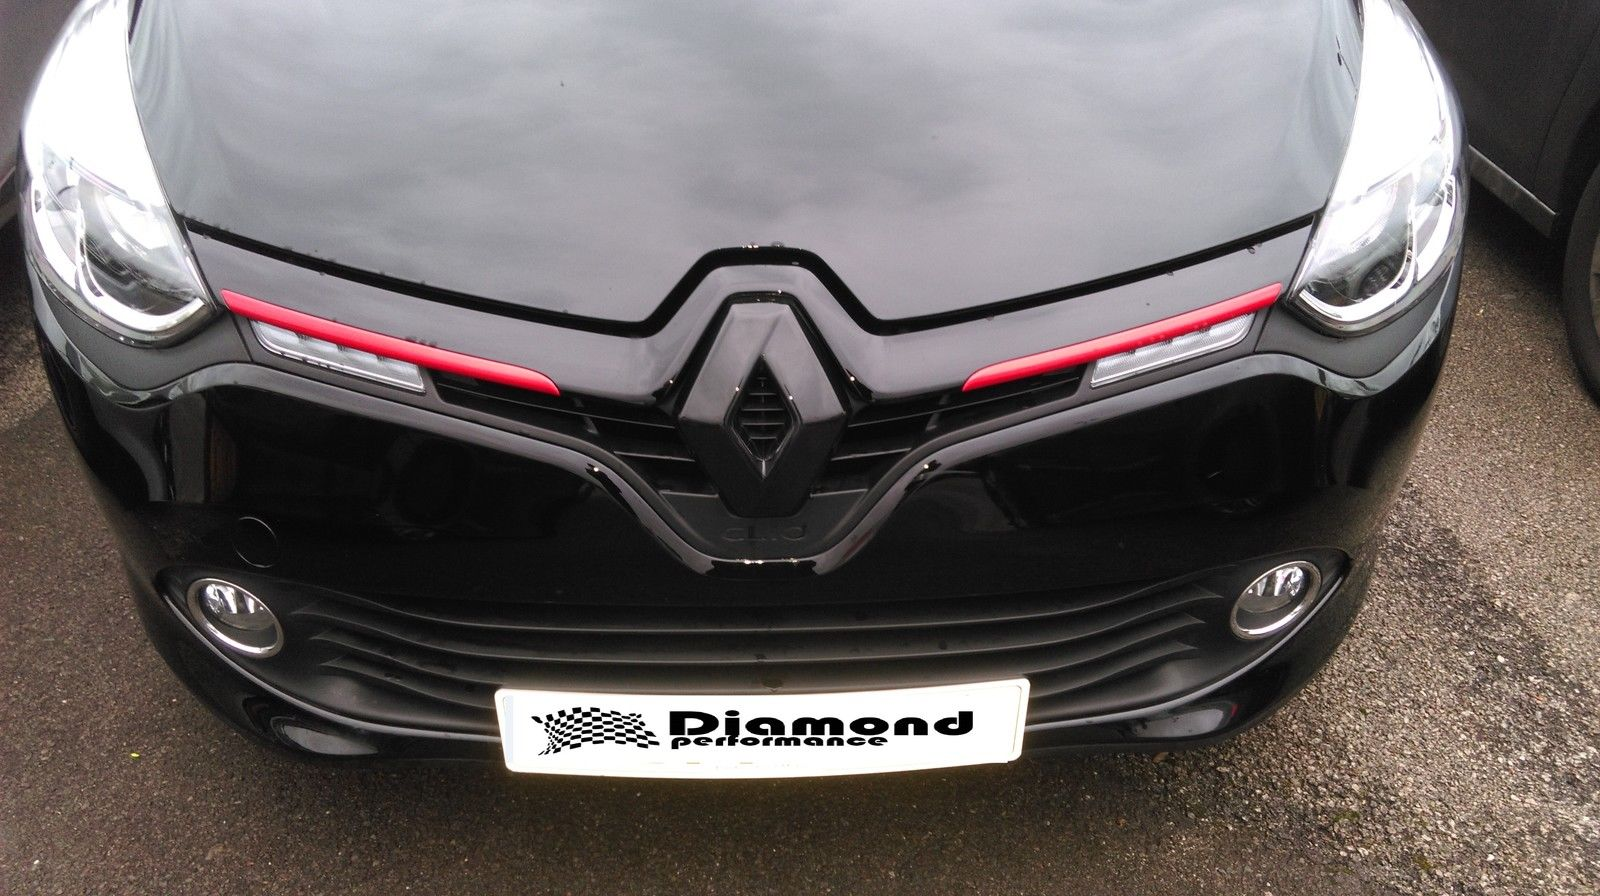 Renault Clio 4 2013 2016 Gloss Black Front Badge Emblem Cover All Models Inc 220 Diamond Performance